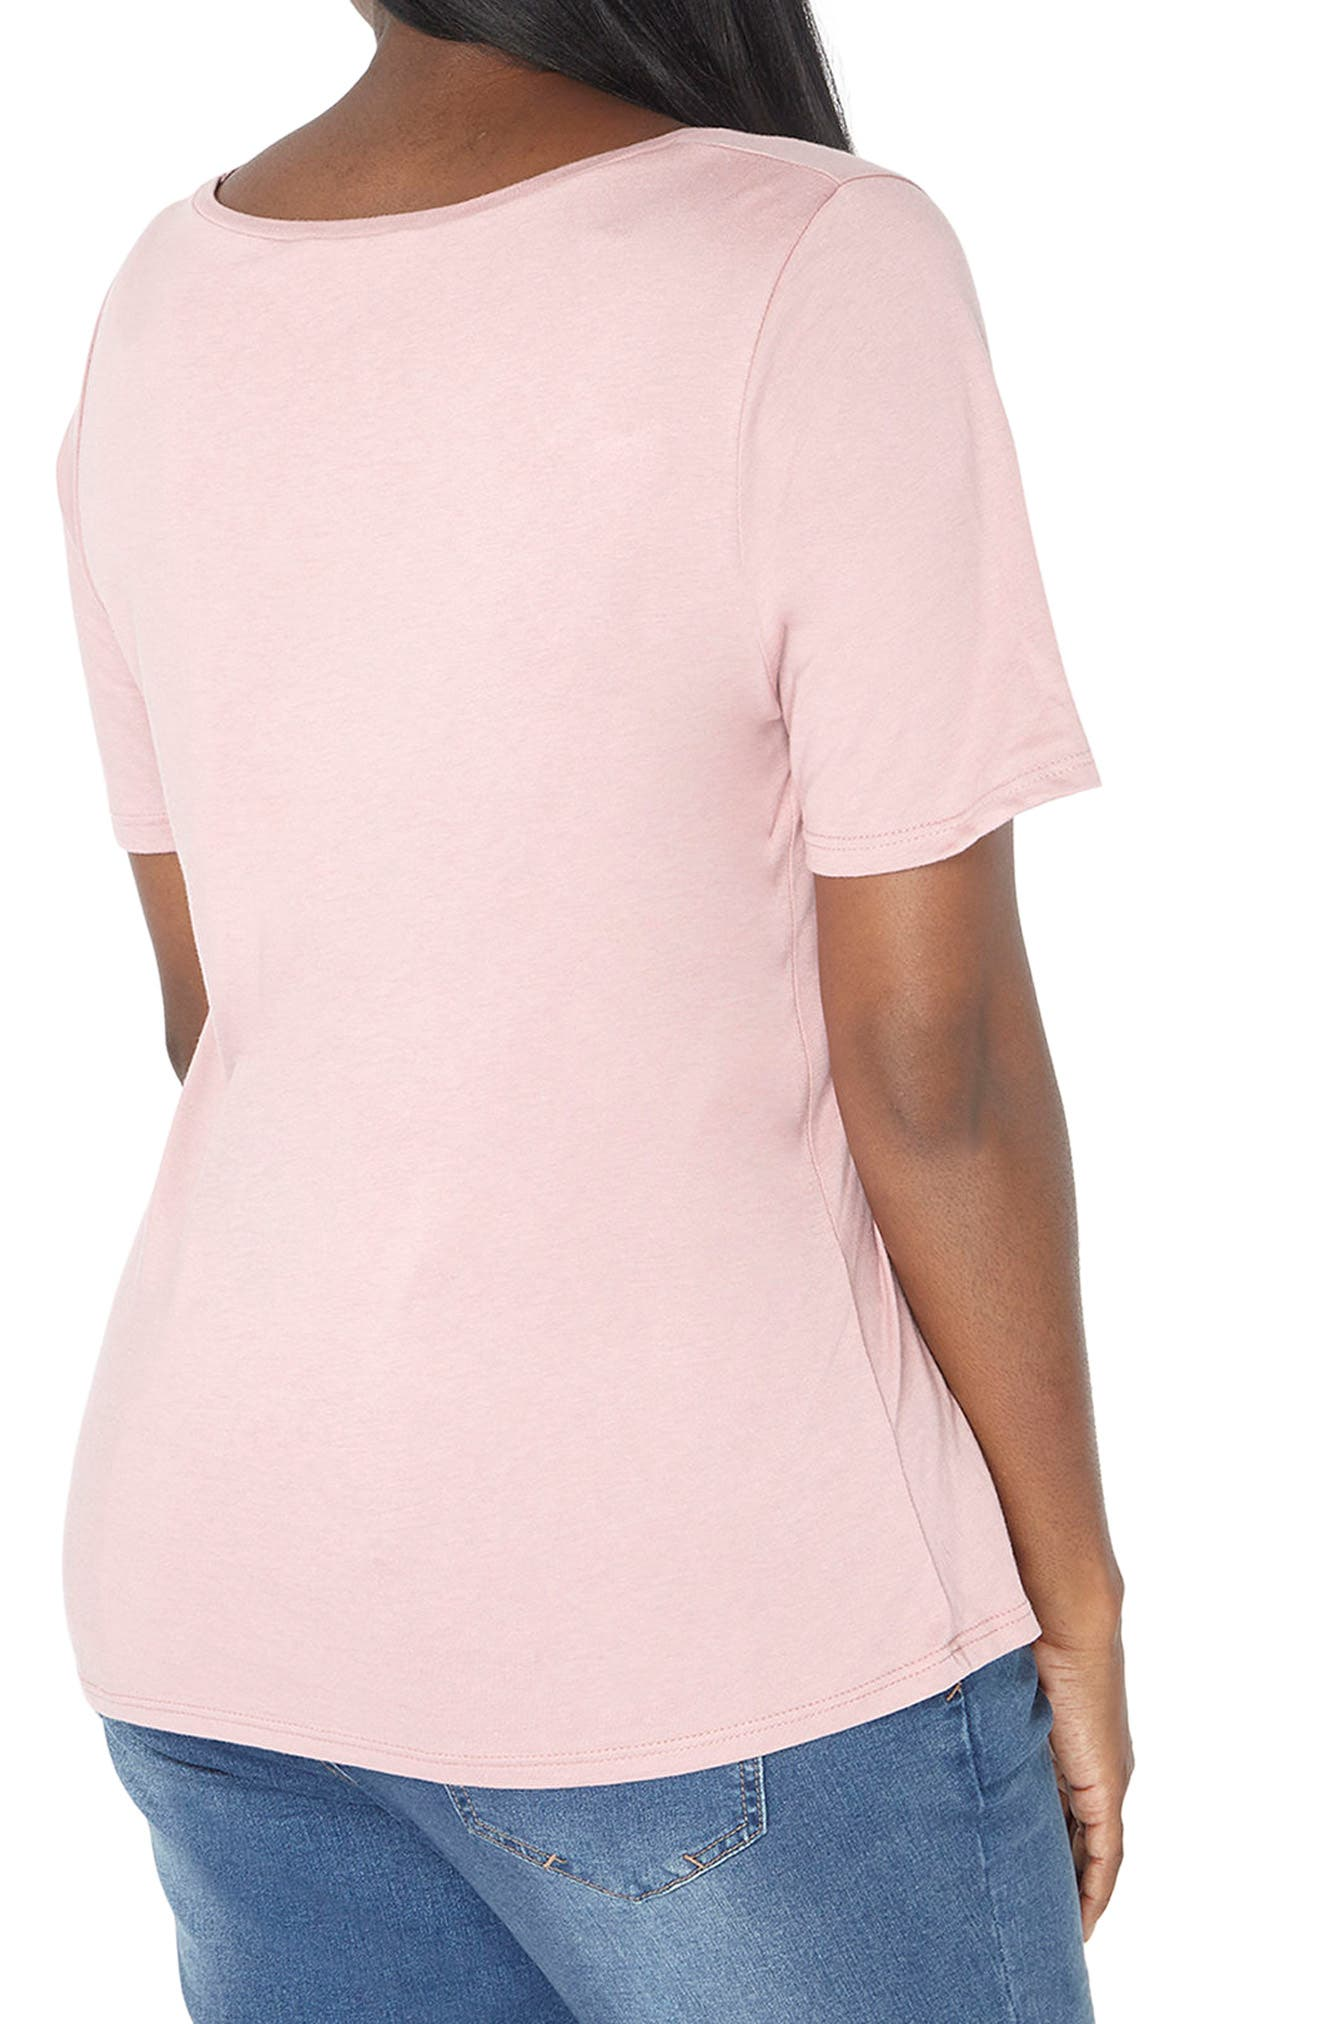 Floral Embroidered Tee,                             Alternate thumbnail 2, color,                             650